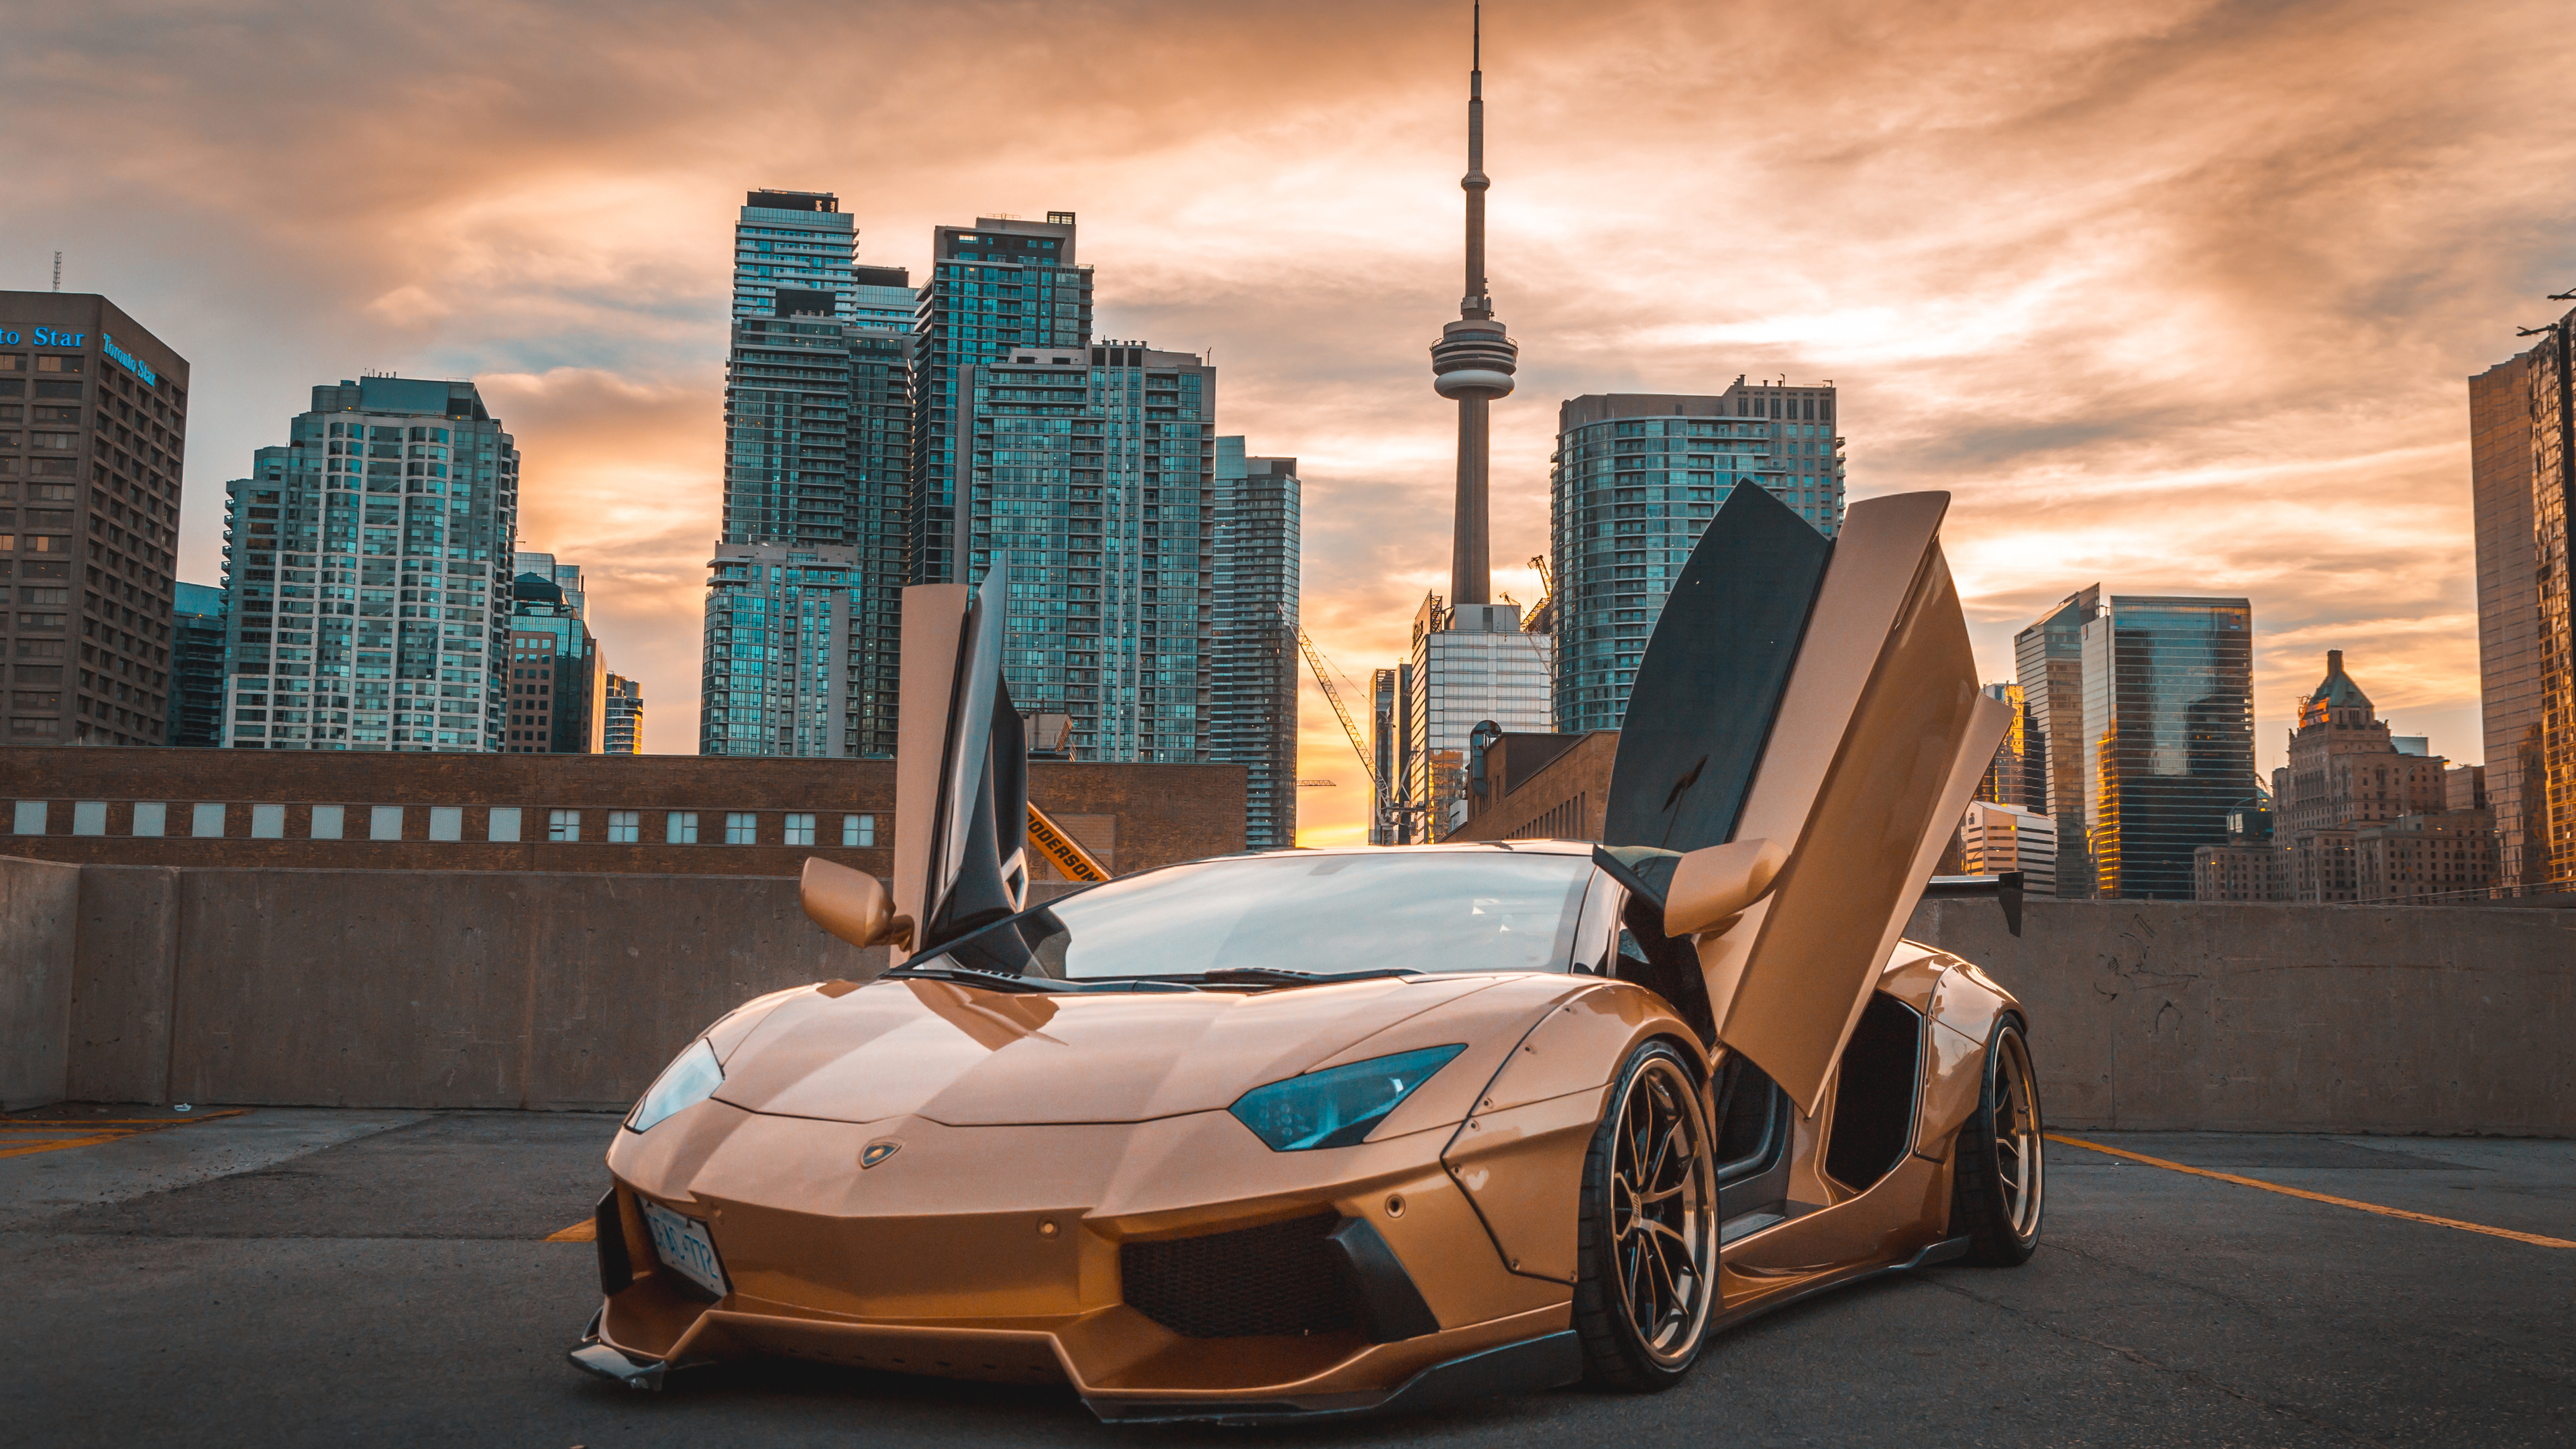 lamborghini aventador cn tower 4k 1553075737 - Lamborghini Aventador CN Tower 4k - lamborghini wallpapers, lamborghini aventador wallpapers, hd-wallpapers, cars wallpapers, 4k-wallpapers